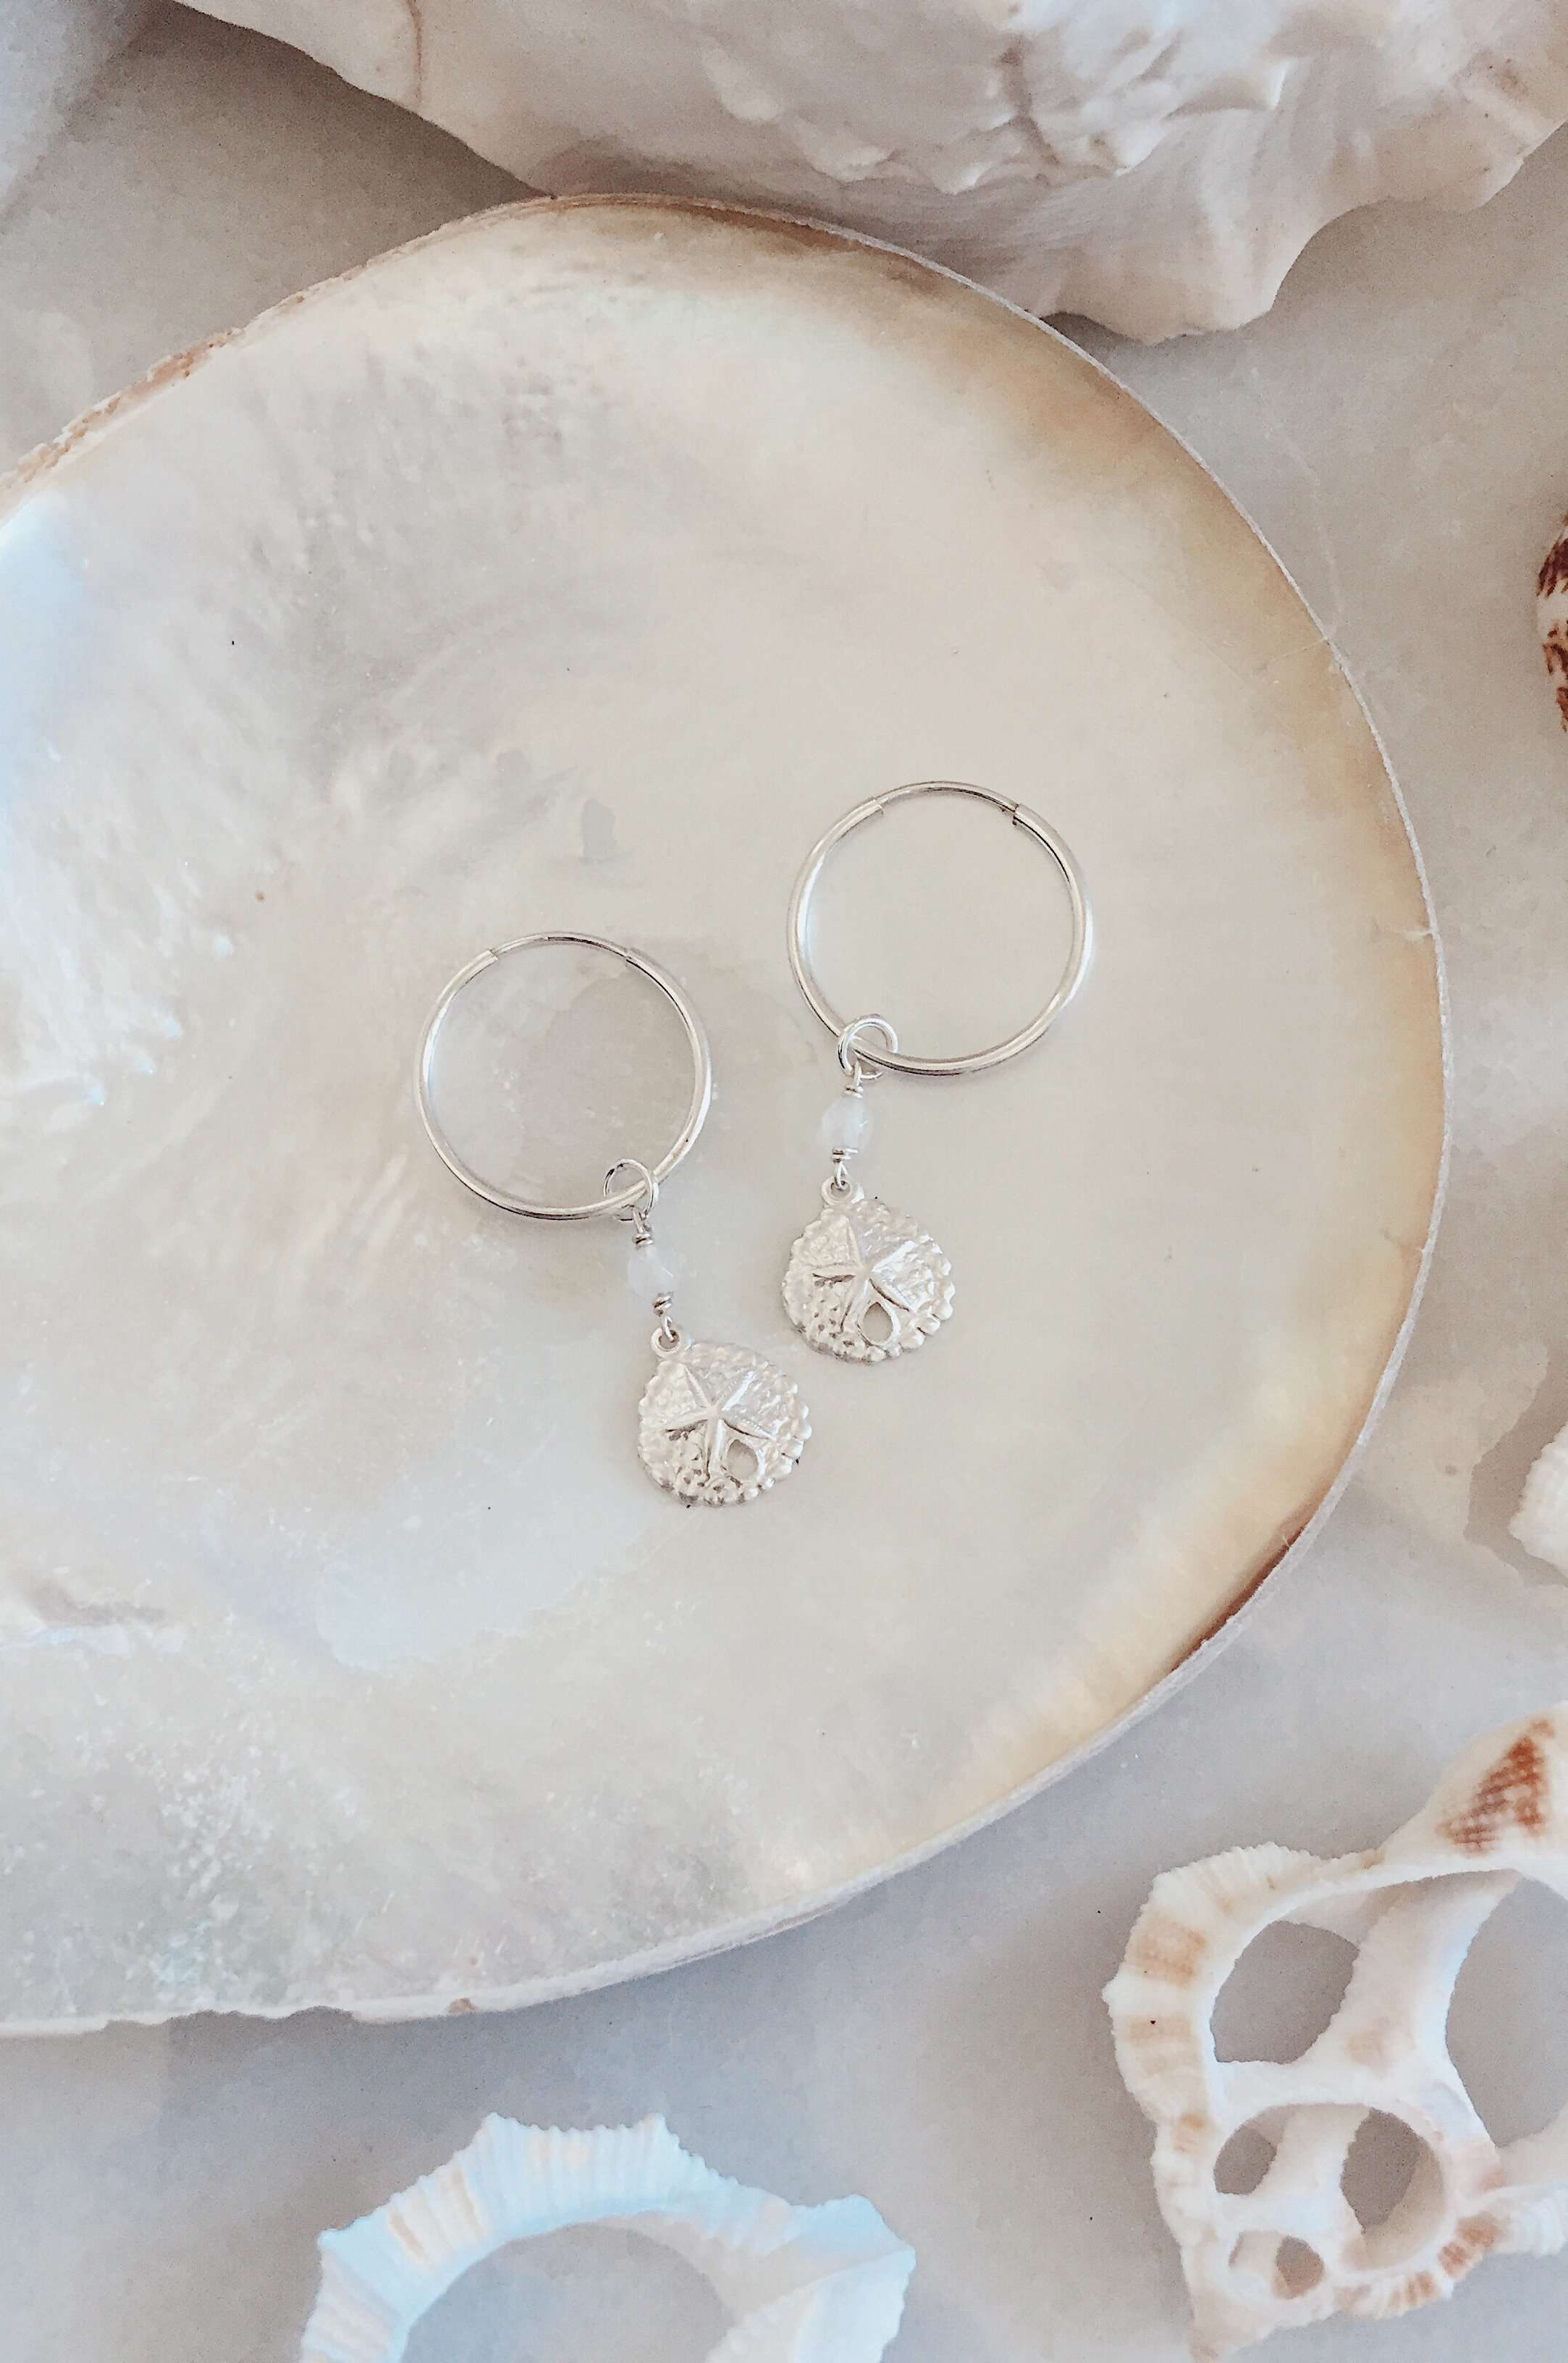 Sterling Silver Sandollar Hoops, Earrings with Rose Quartz by Lunarsea Designs